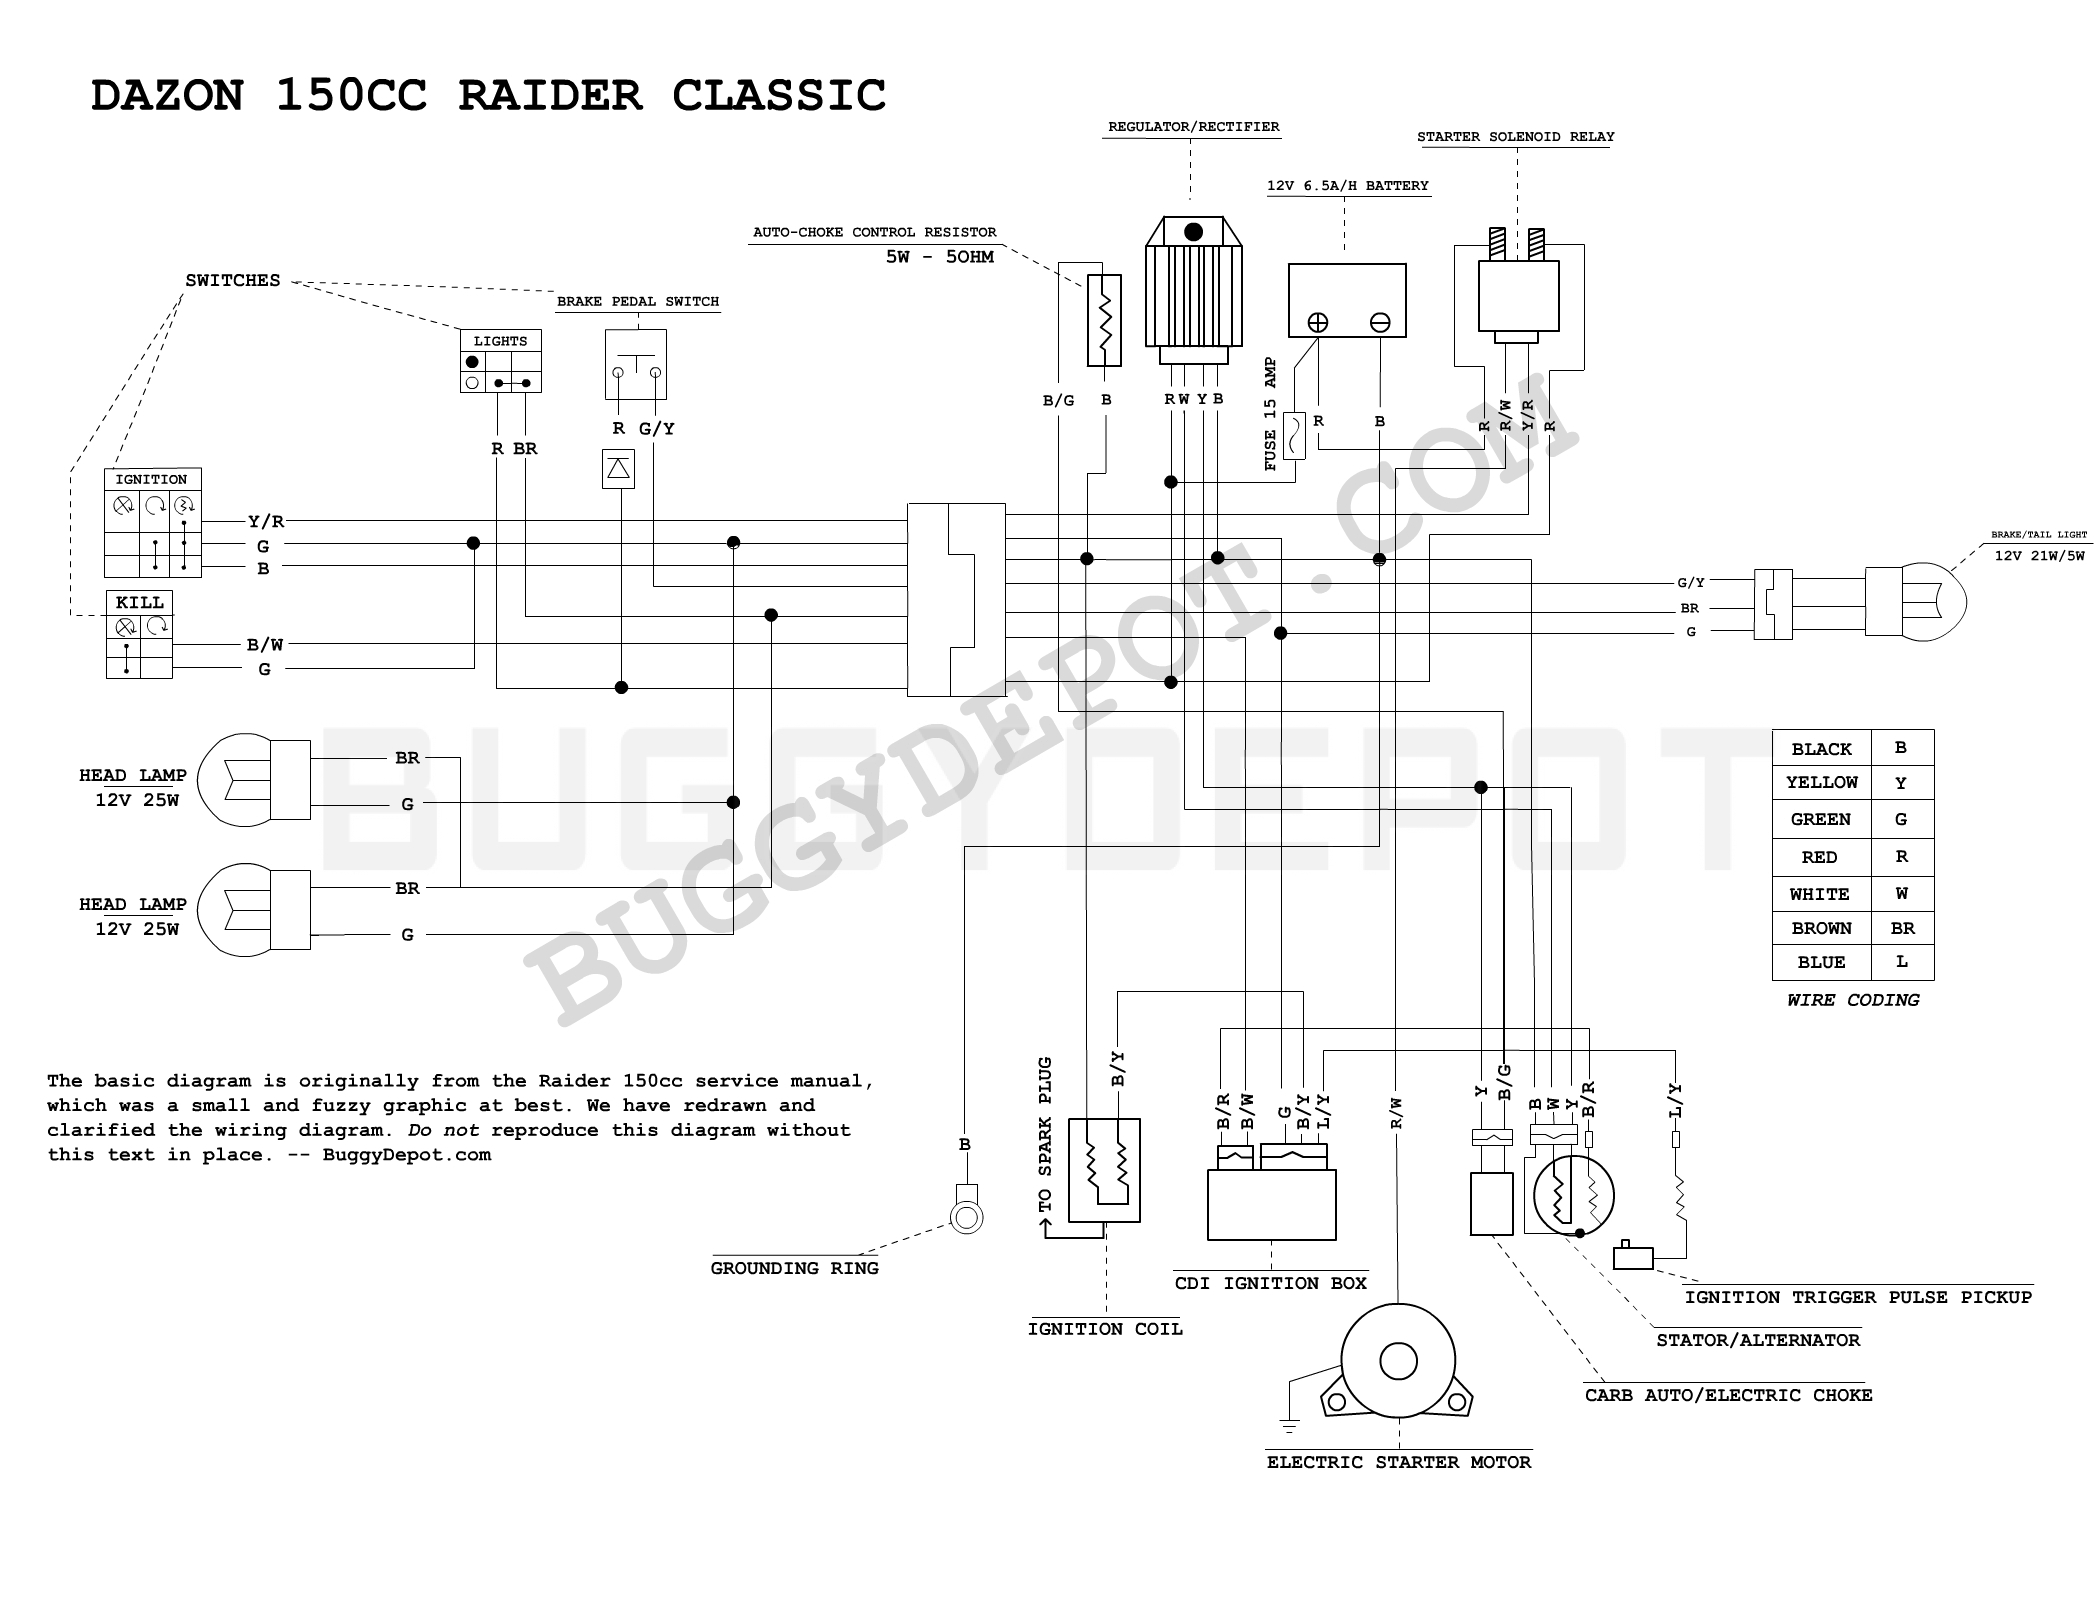 article_33_1278205207 cf 250 wiring diagram honda wiring diagram \u2022 wiring diagrams j 2009 Yamaha Raider Wiring-Diagram at readyjetset.co